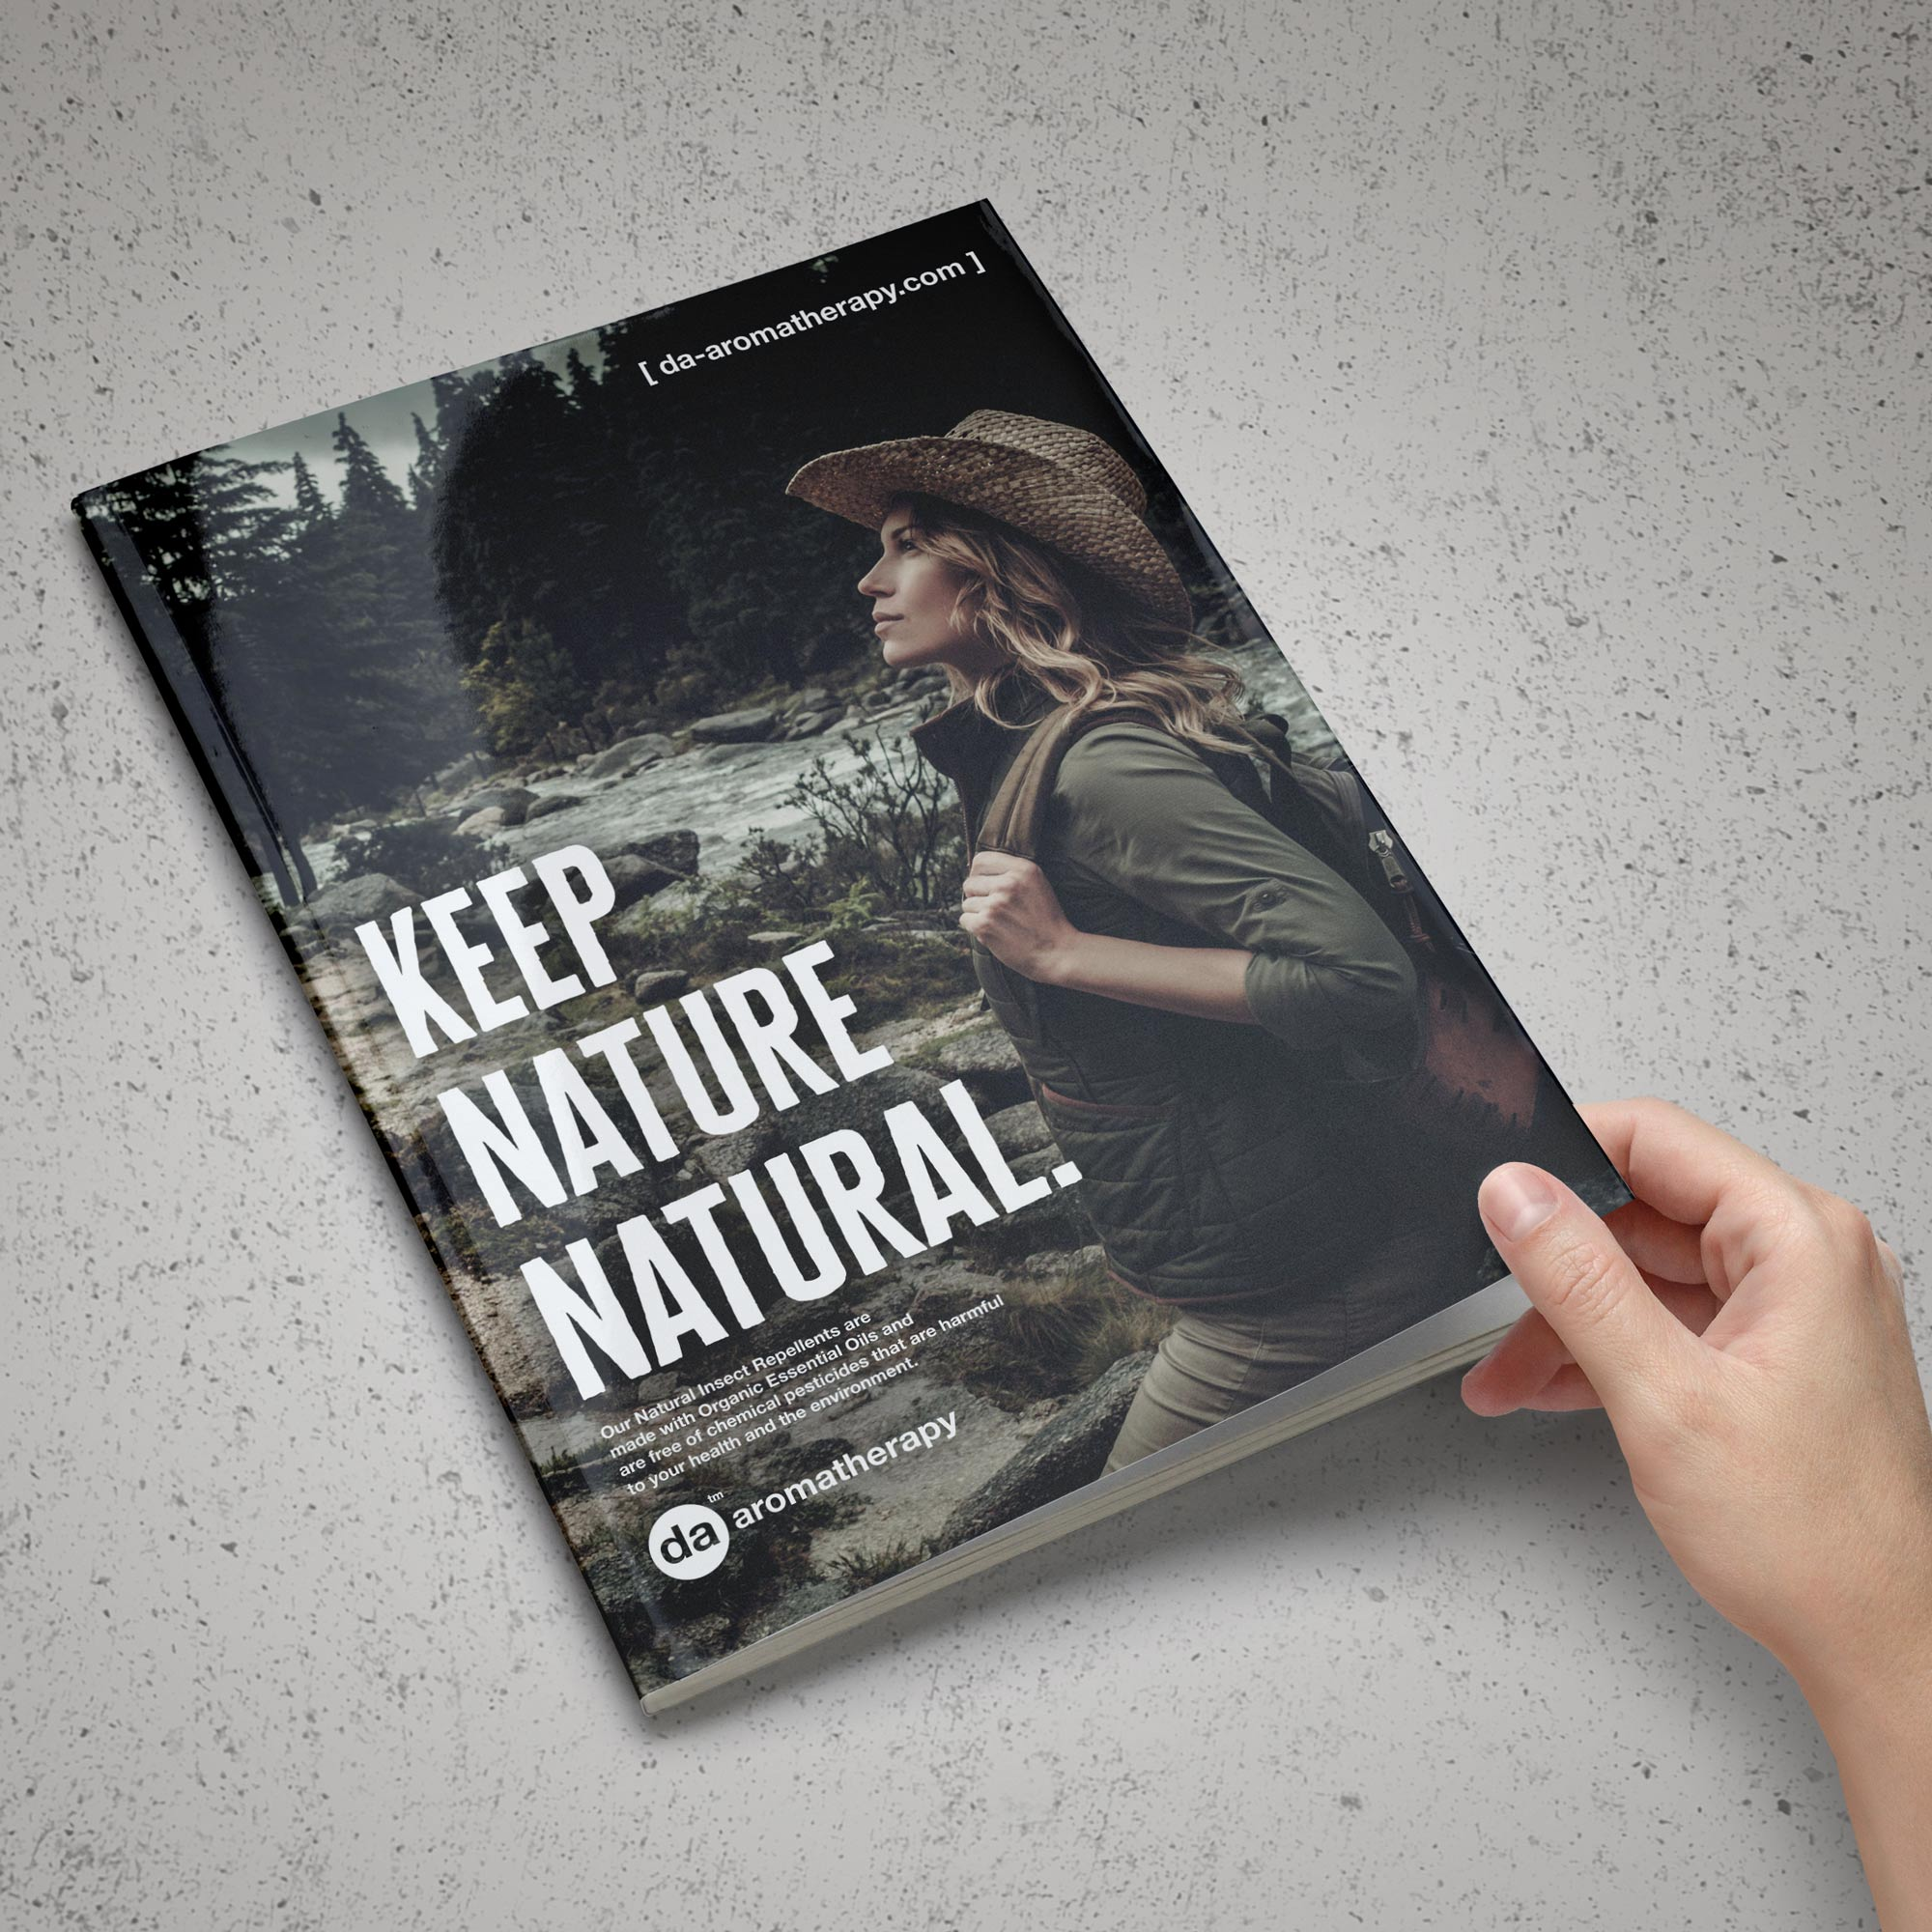 Keep Nature Natural - Introduction of DA Aromatherapy 2.0 in the Magazine Ad Campaign